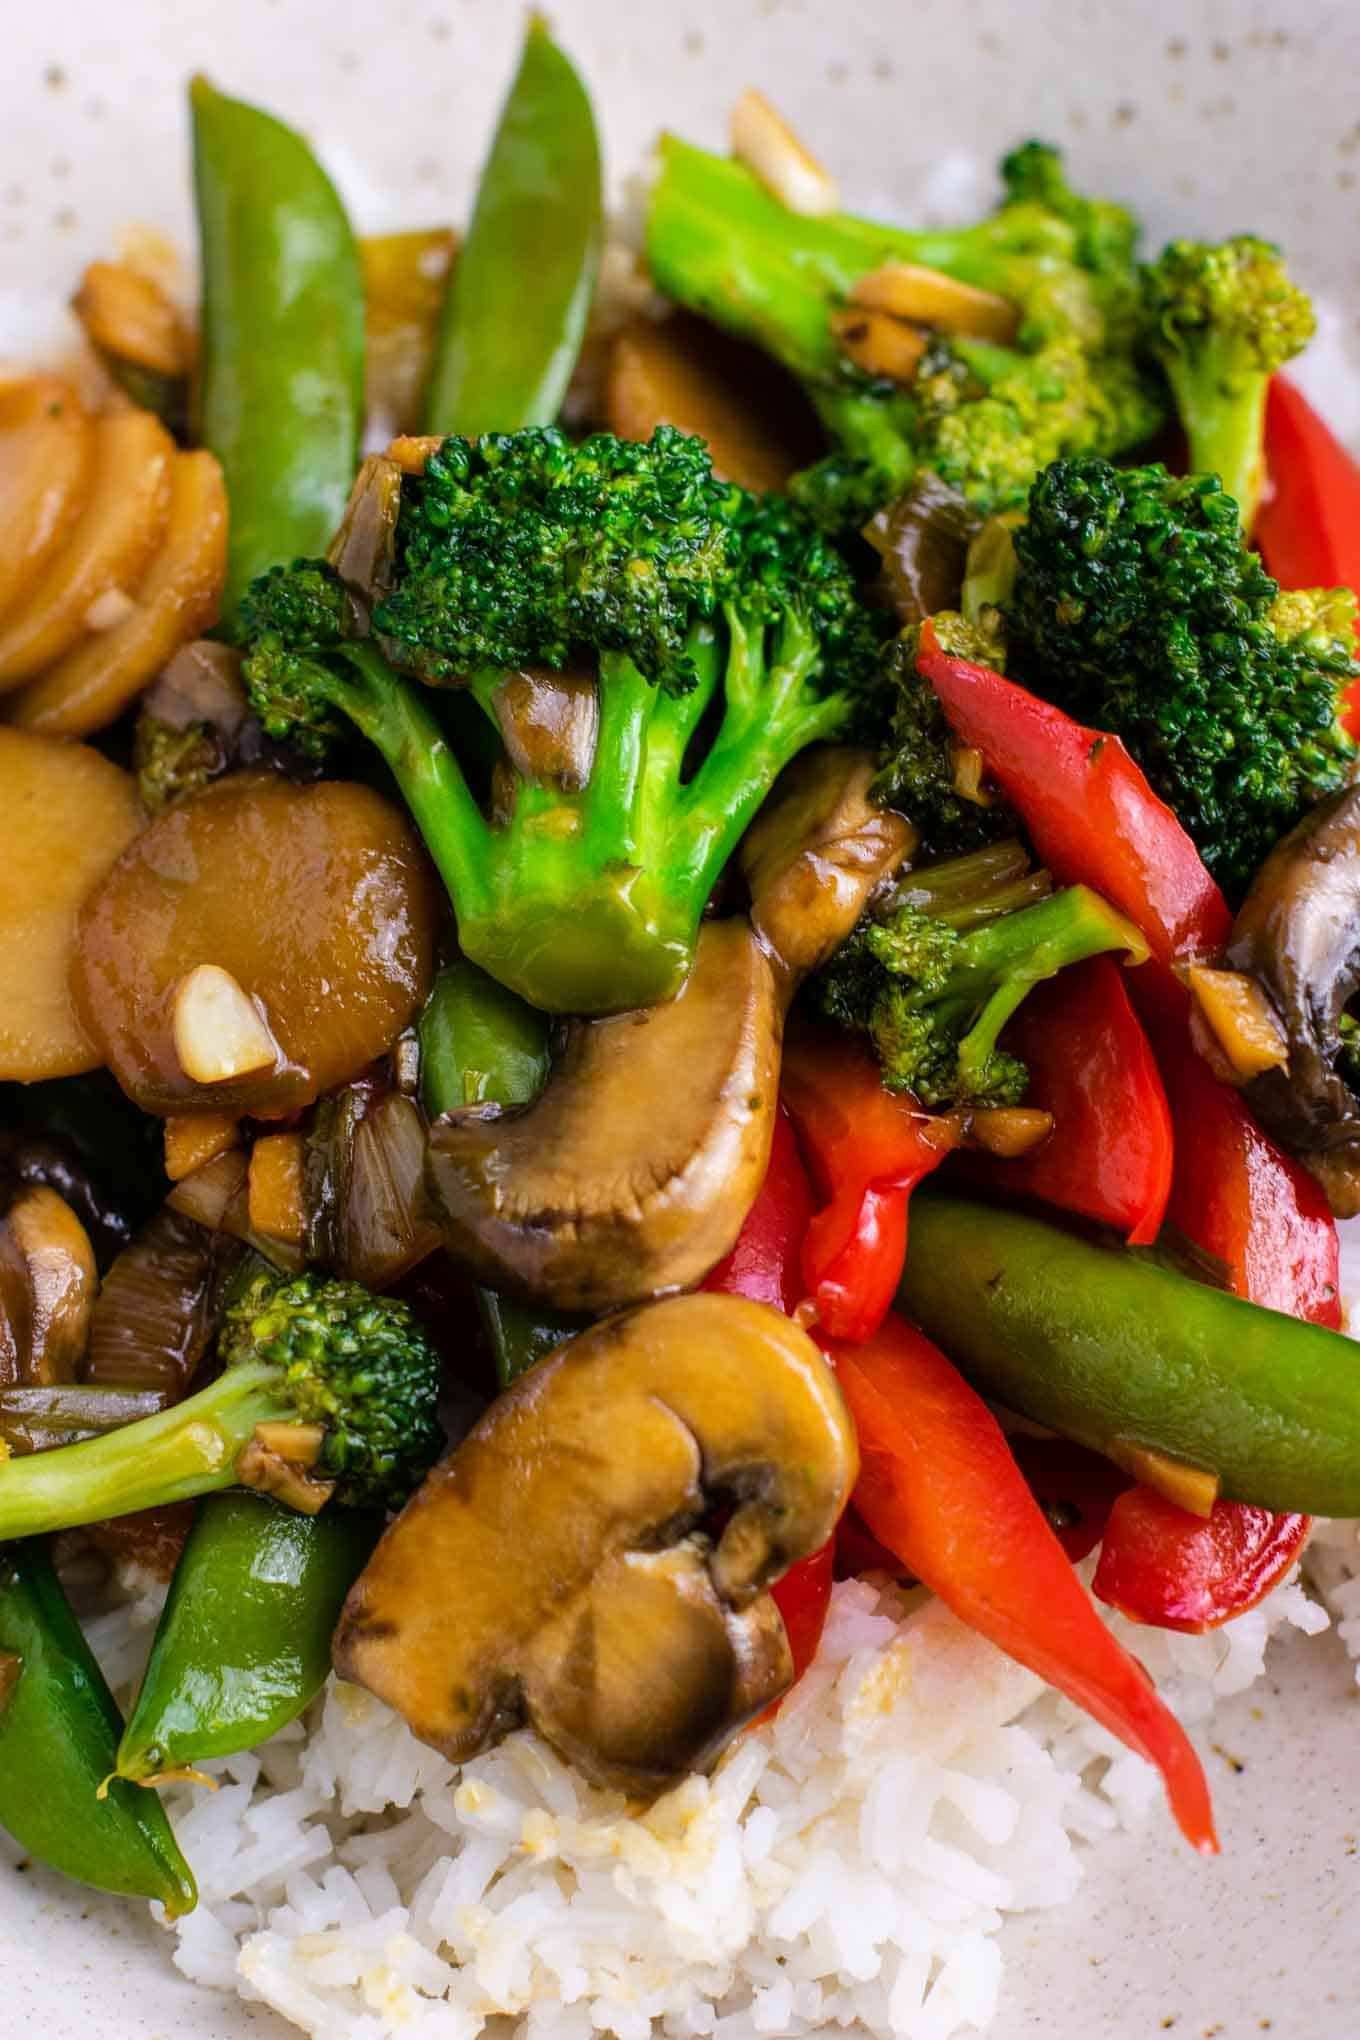 Veggie Stir Fry Recipe With Homemade Stir Fry Sauce This Is Amazing And Has So Muc Veggie Stir Fry Recipes Vegetable Stir Fry Recipe Fried Vegetable Recipes